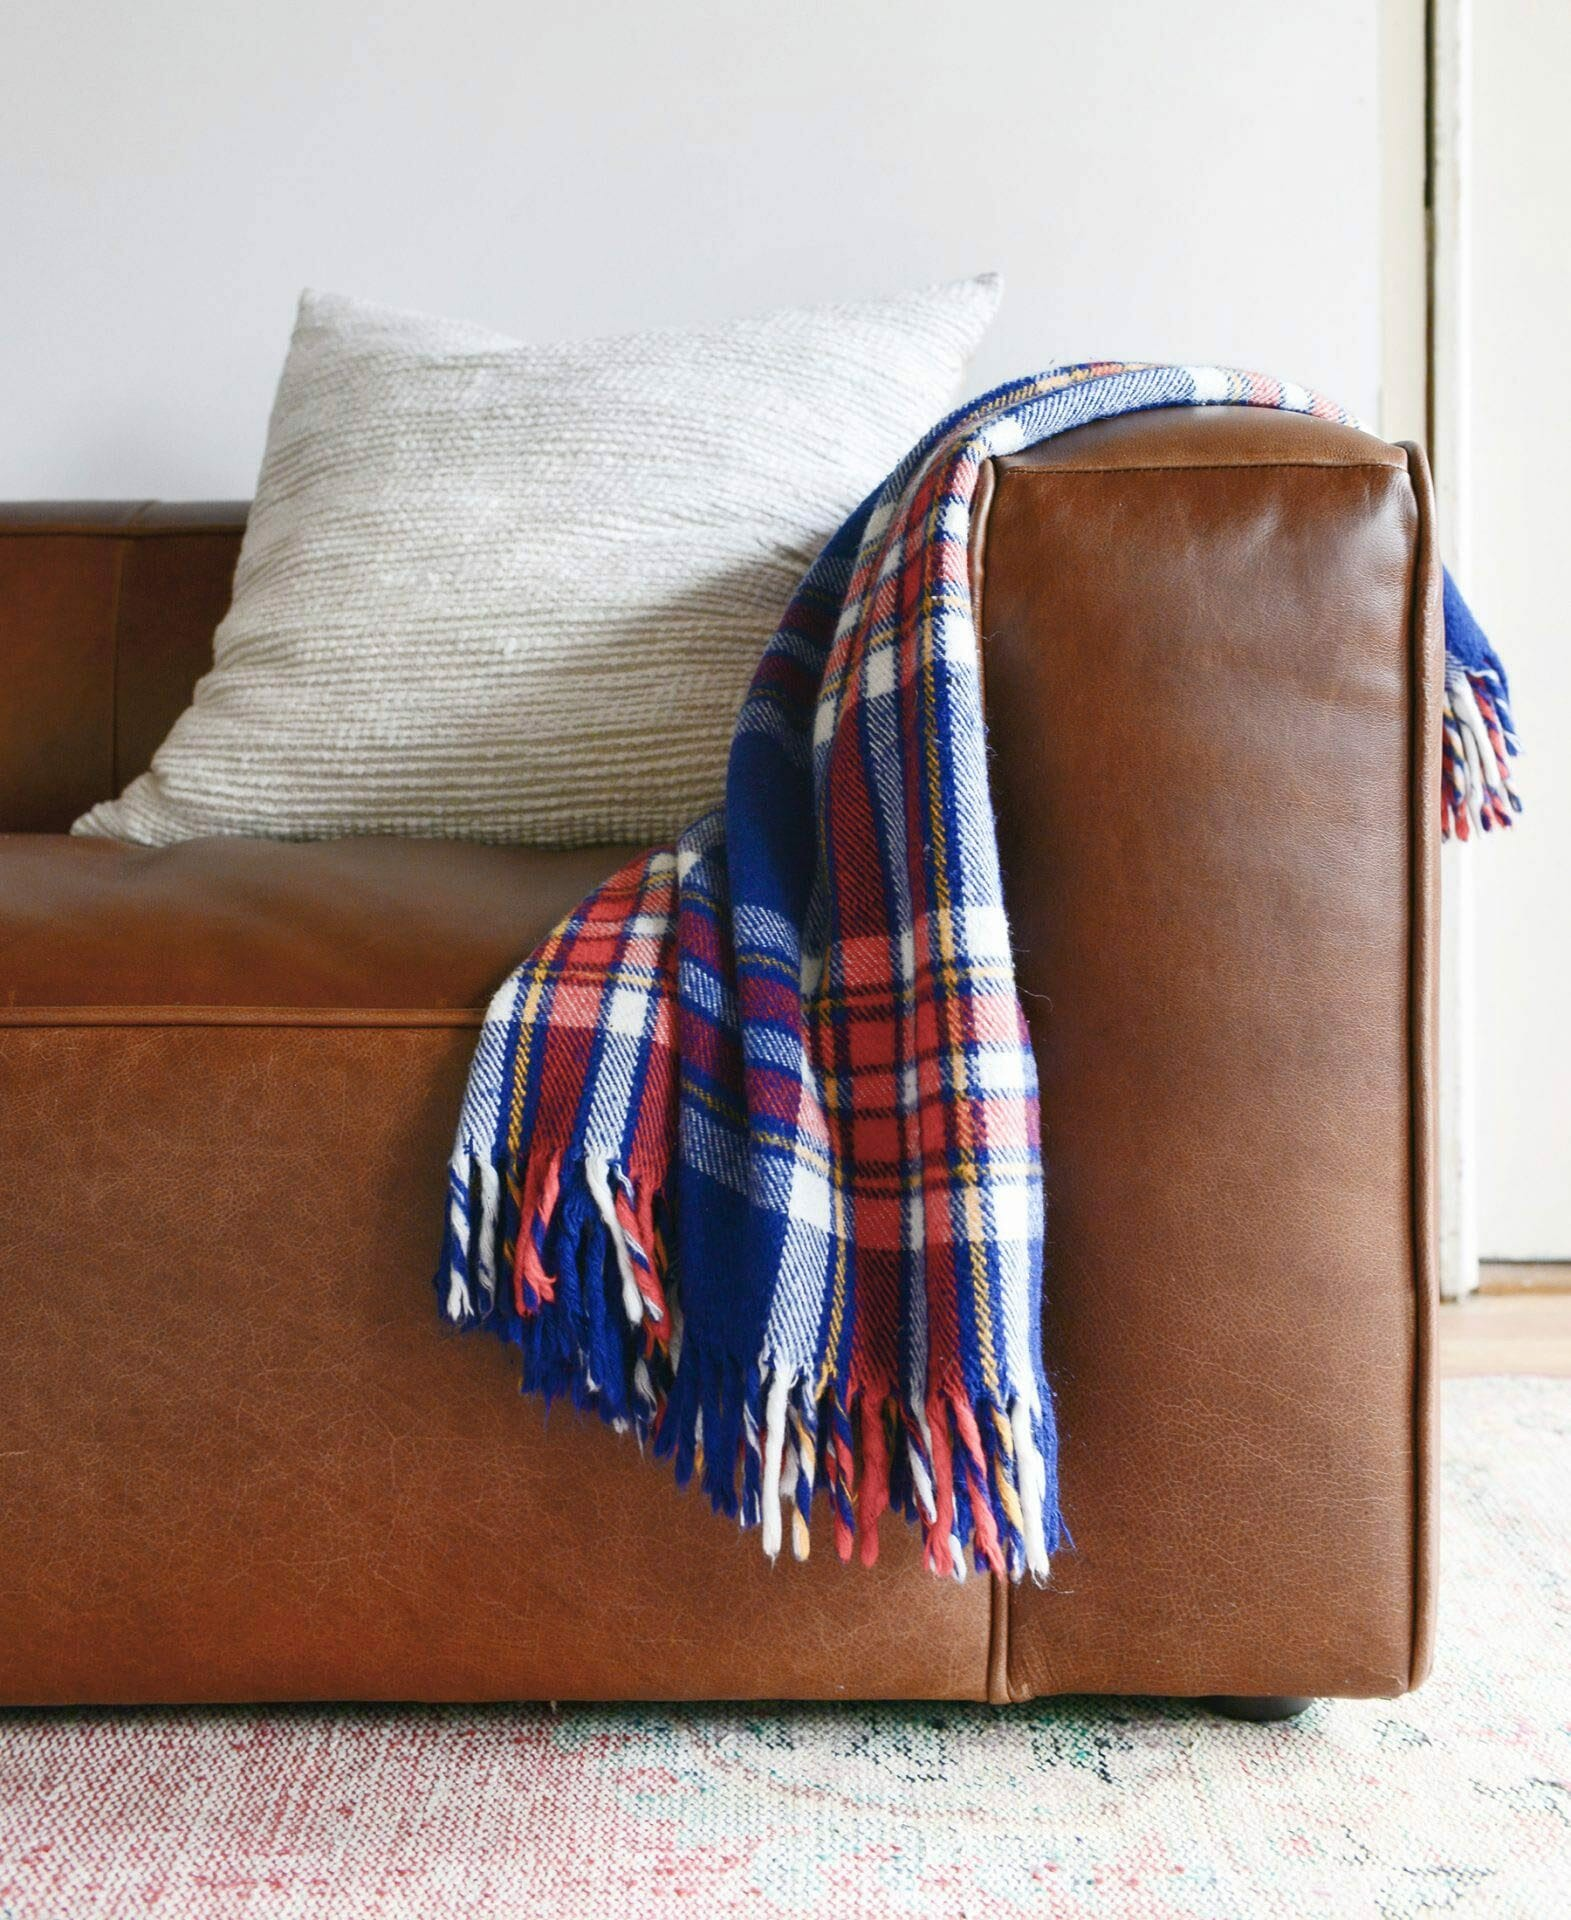 A plaid throw is draped over an Article leather sofa from Yellow Brick Home